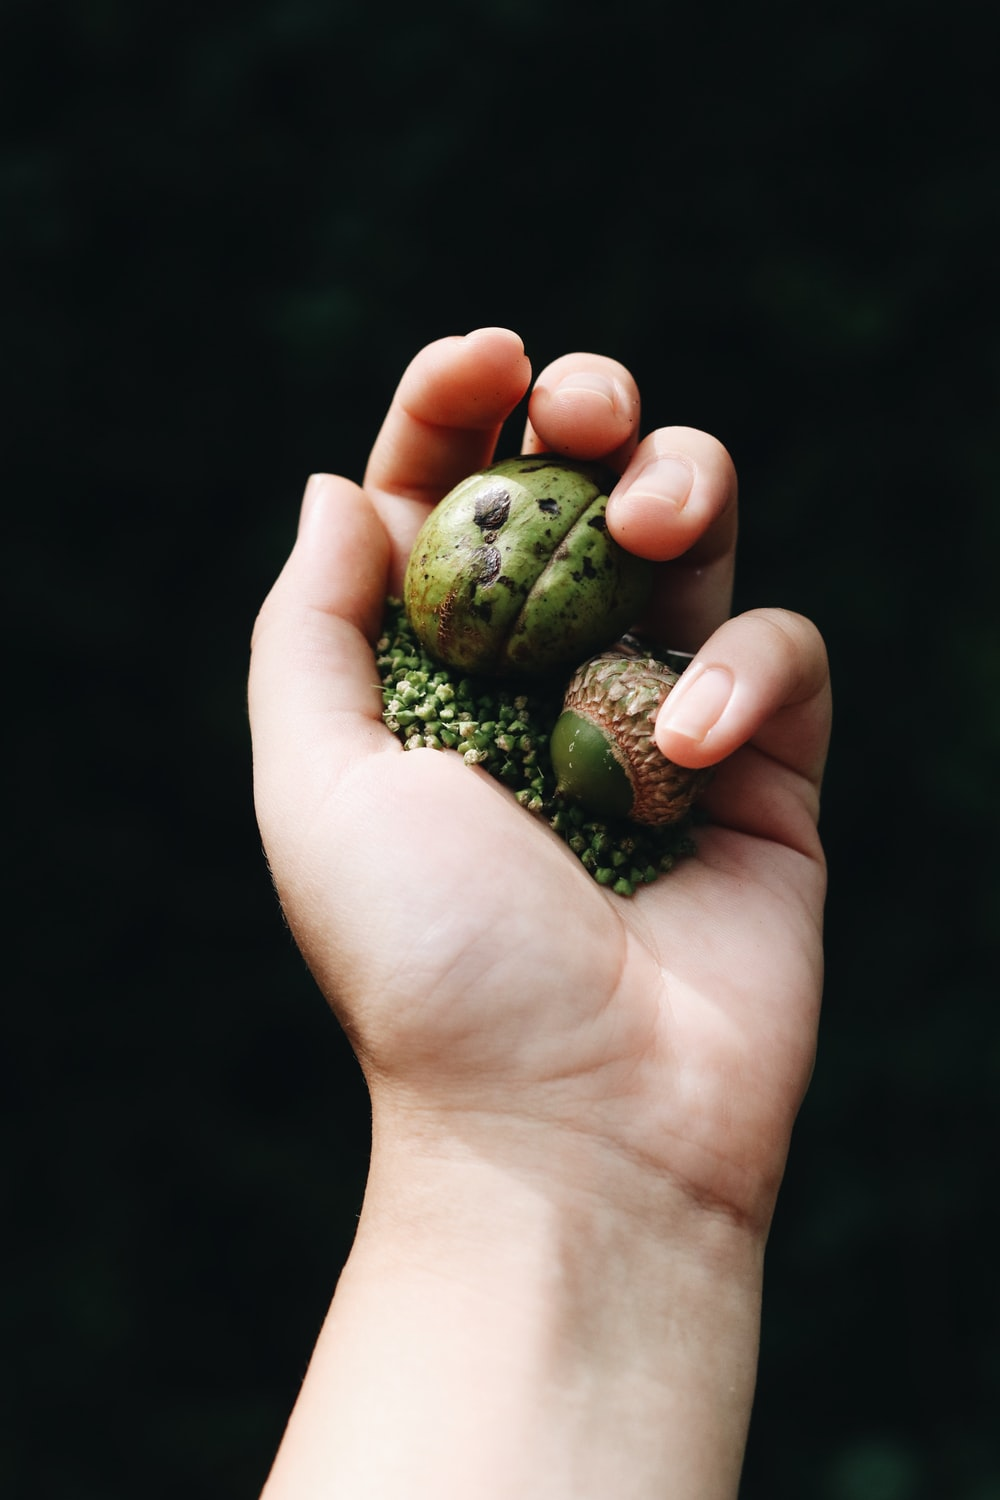 person holding green and white frog